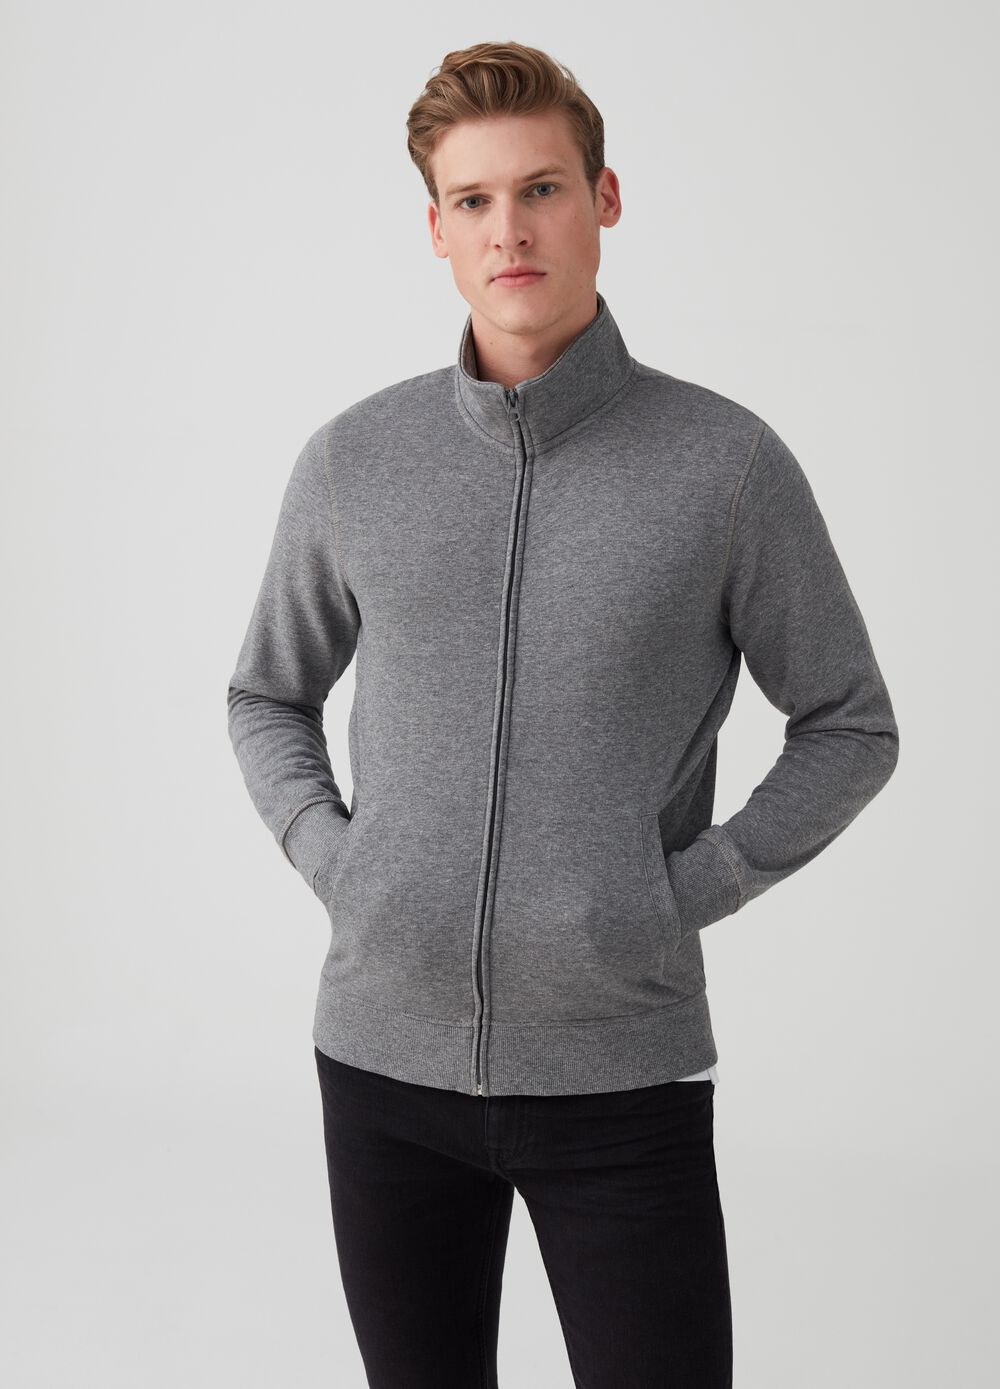 Mélange sweatshirt with pockets and zip